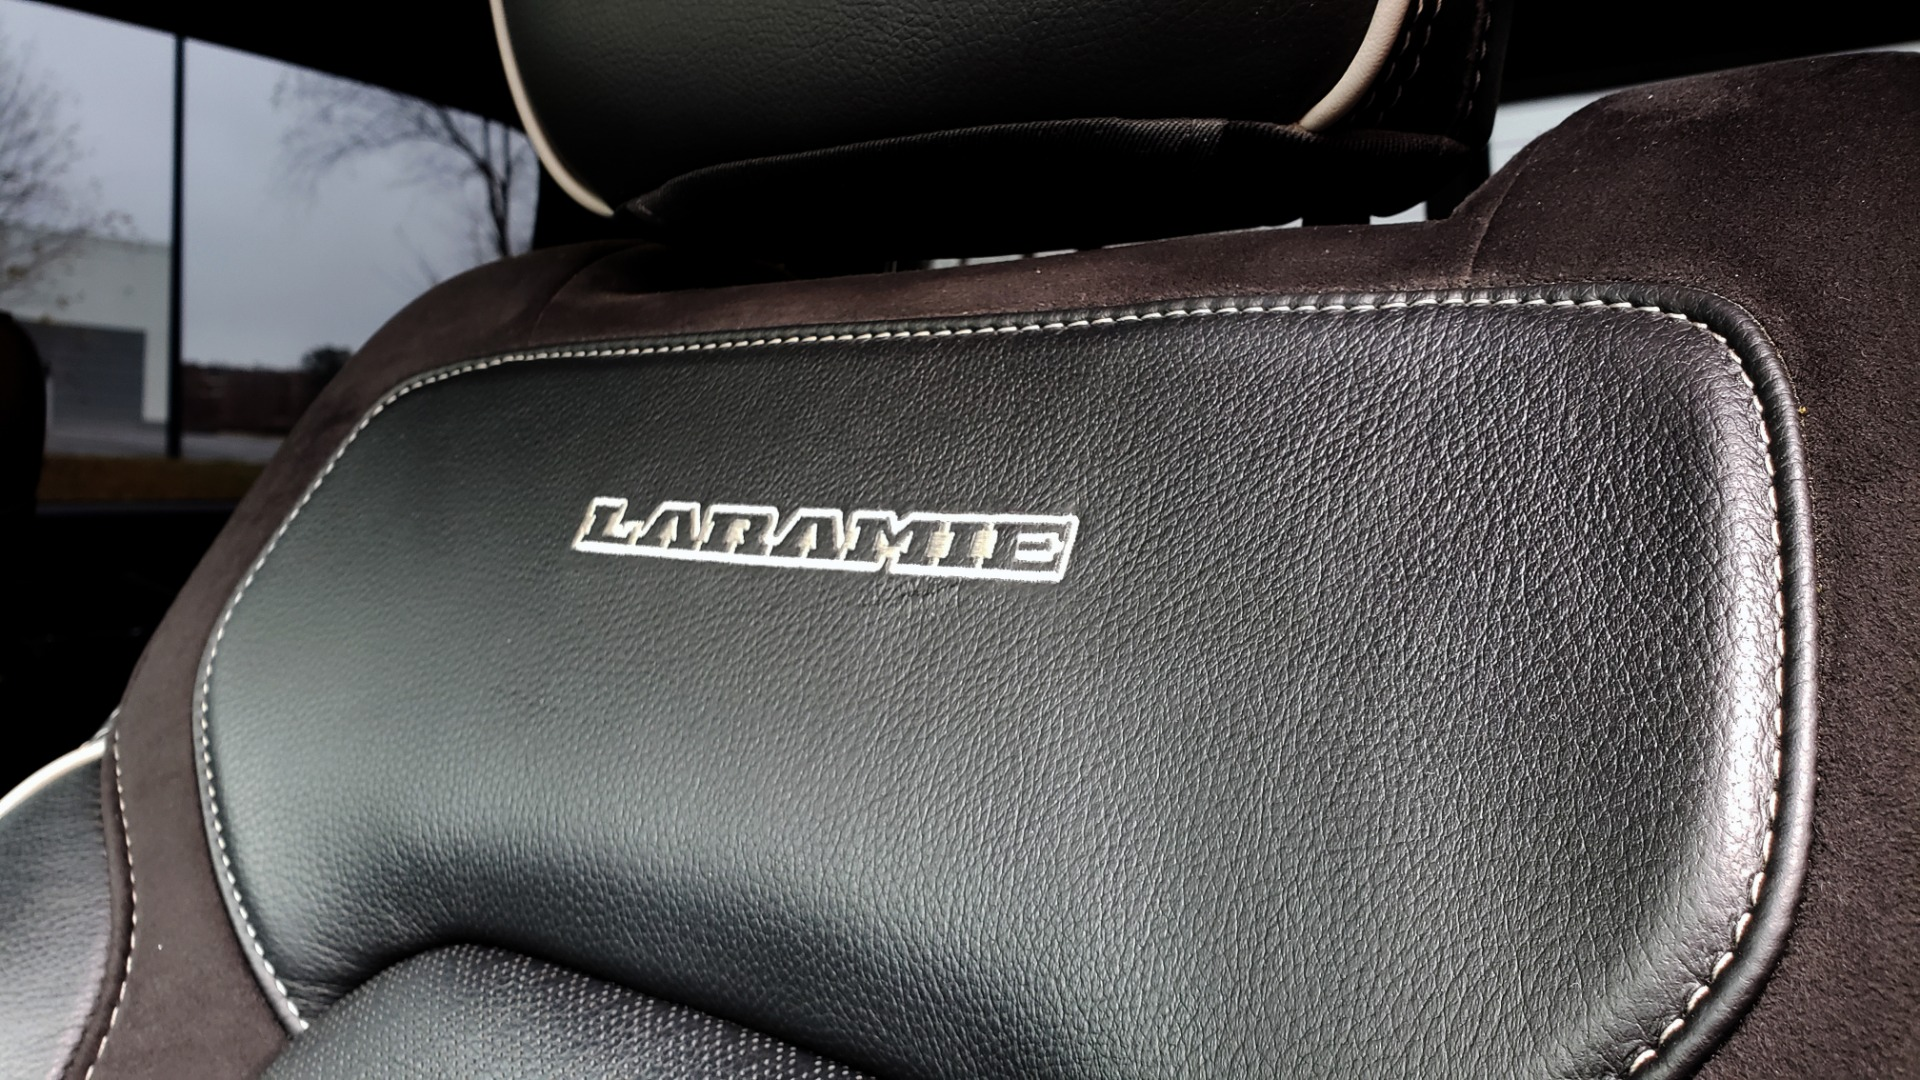 Used 2019 Ram 1500 LARAMIE SPORT / 2WD / 5.7L HEMI / NAV / BLIND SPOT / HTD STS / REARVIEW for sale Sold at Formula Imports in Charlotte NC 28227 46